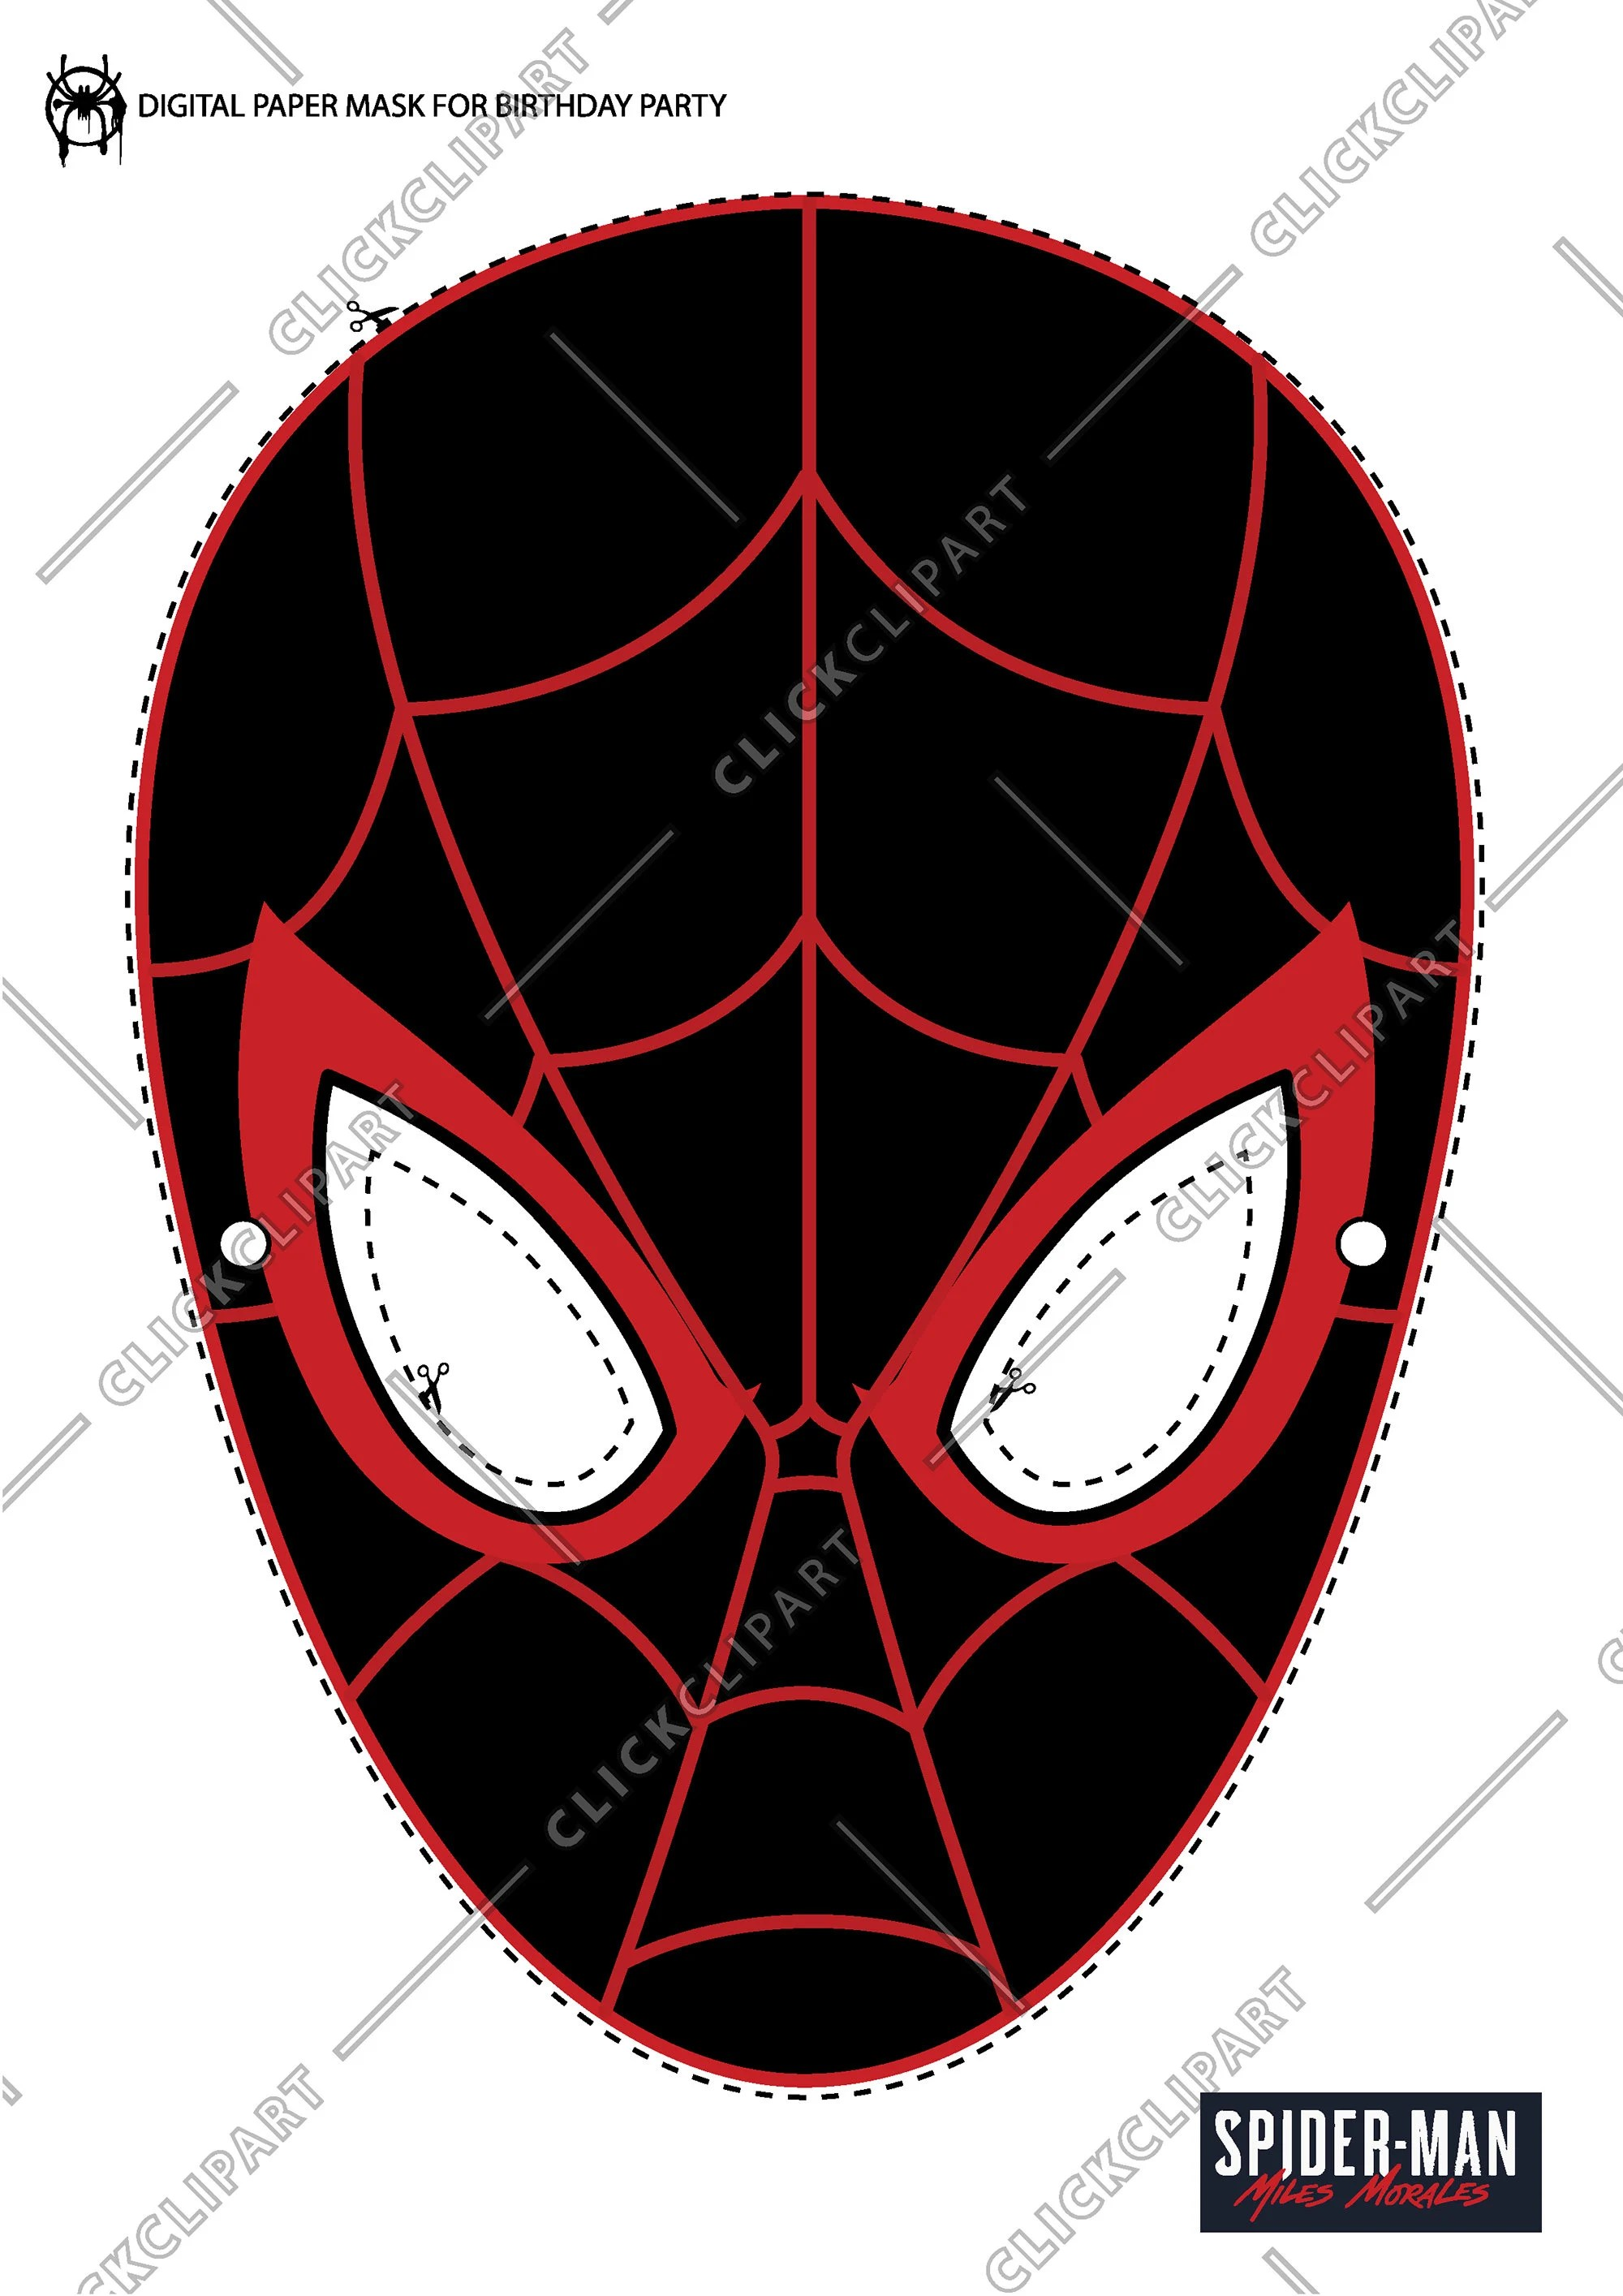 How To Draw Miles Morales Face : miles, morales, Miles, Morales, Spider-Man, Birthday, Party, Digital, Paper